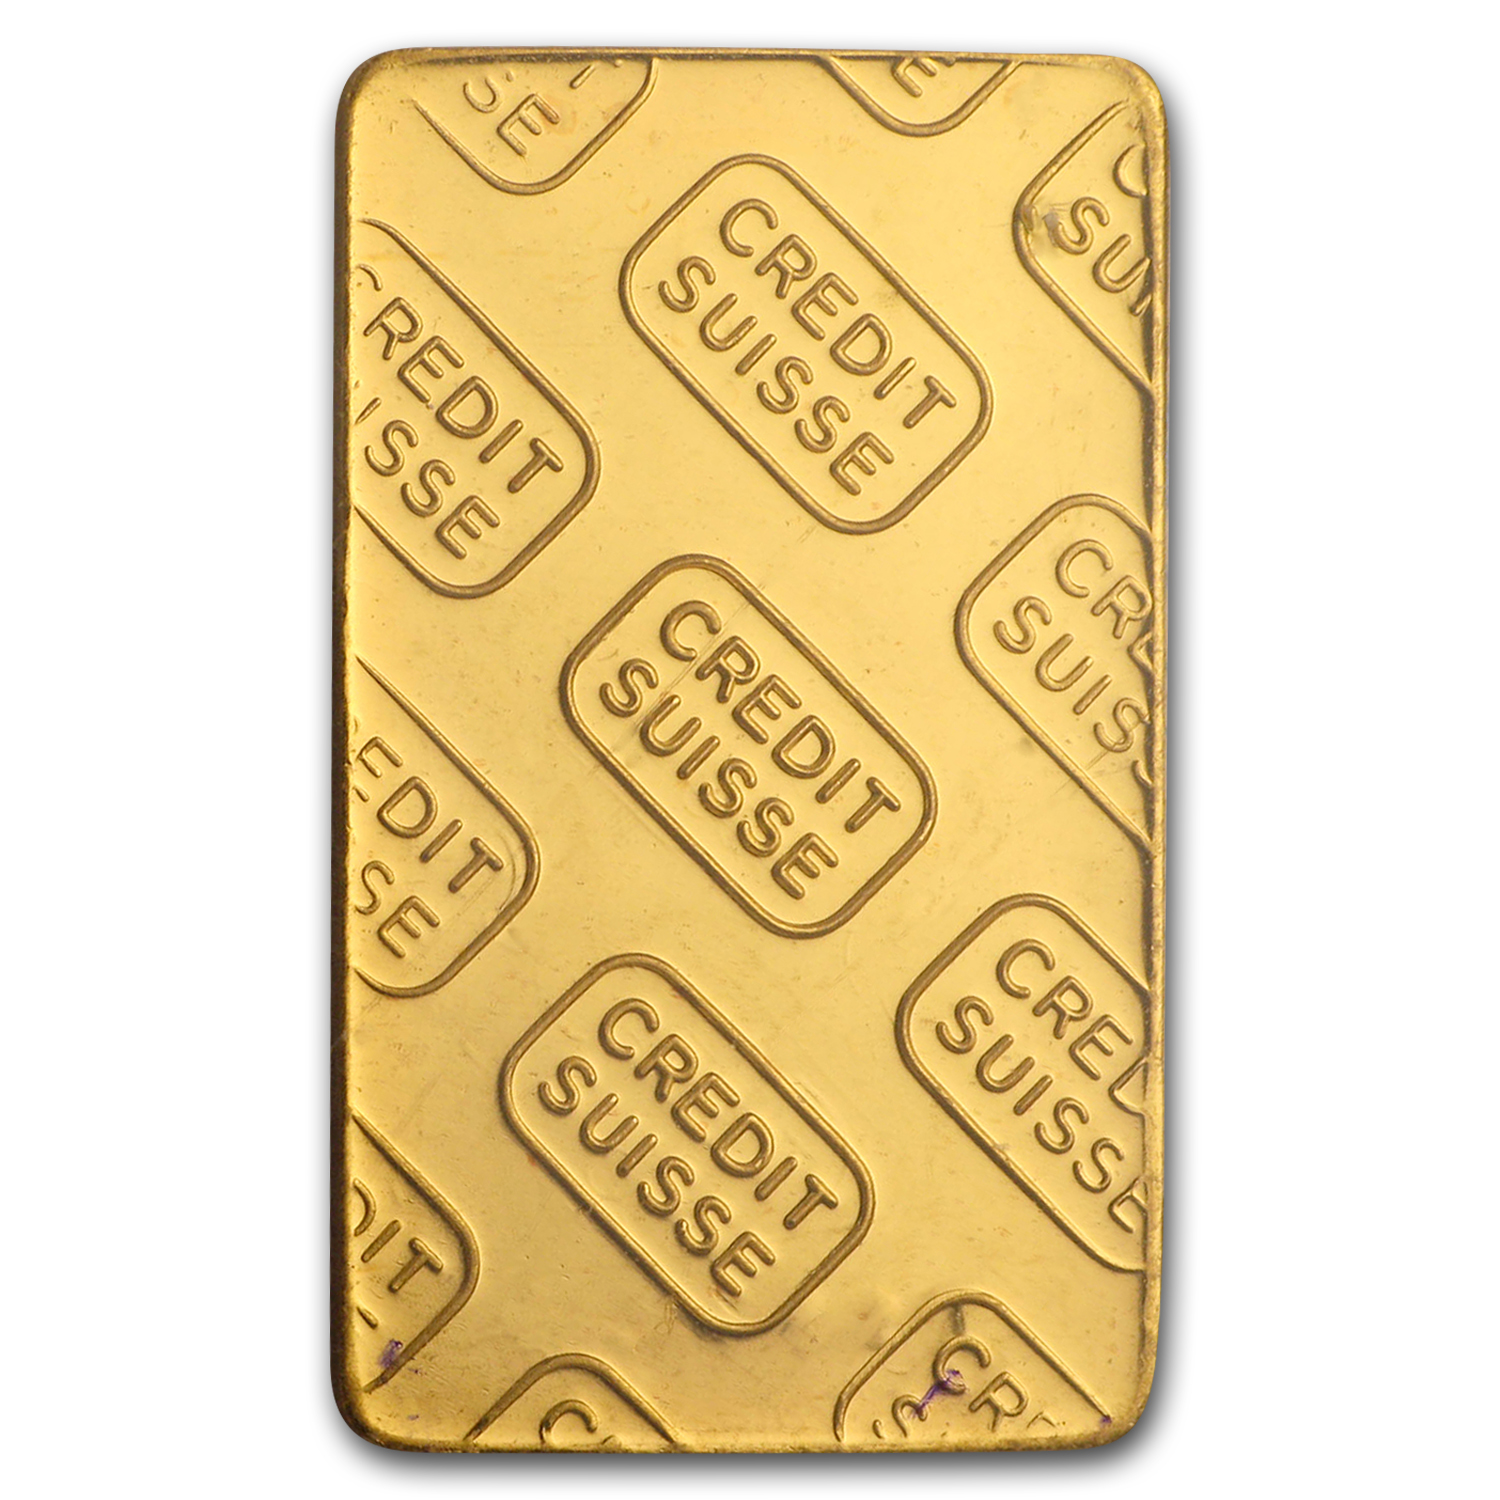 2.5 gram Gold Bars - Credit Suisse (in Assay)